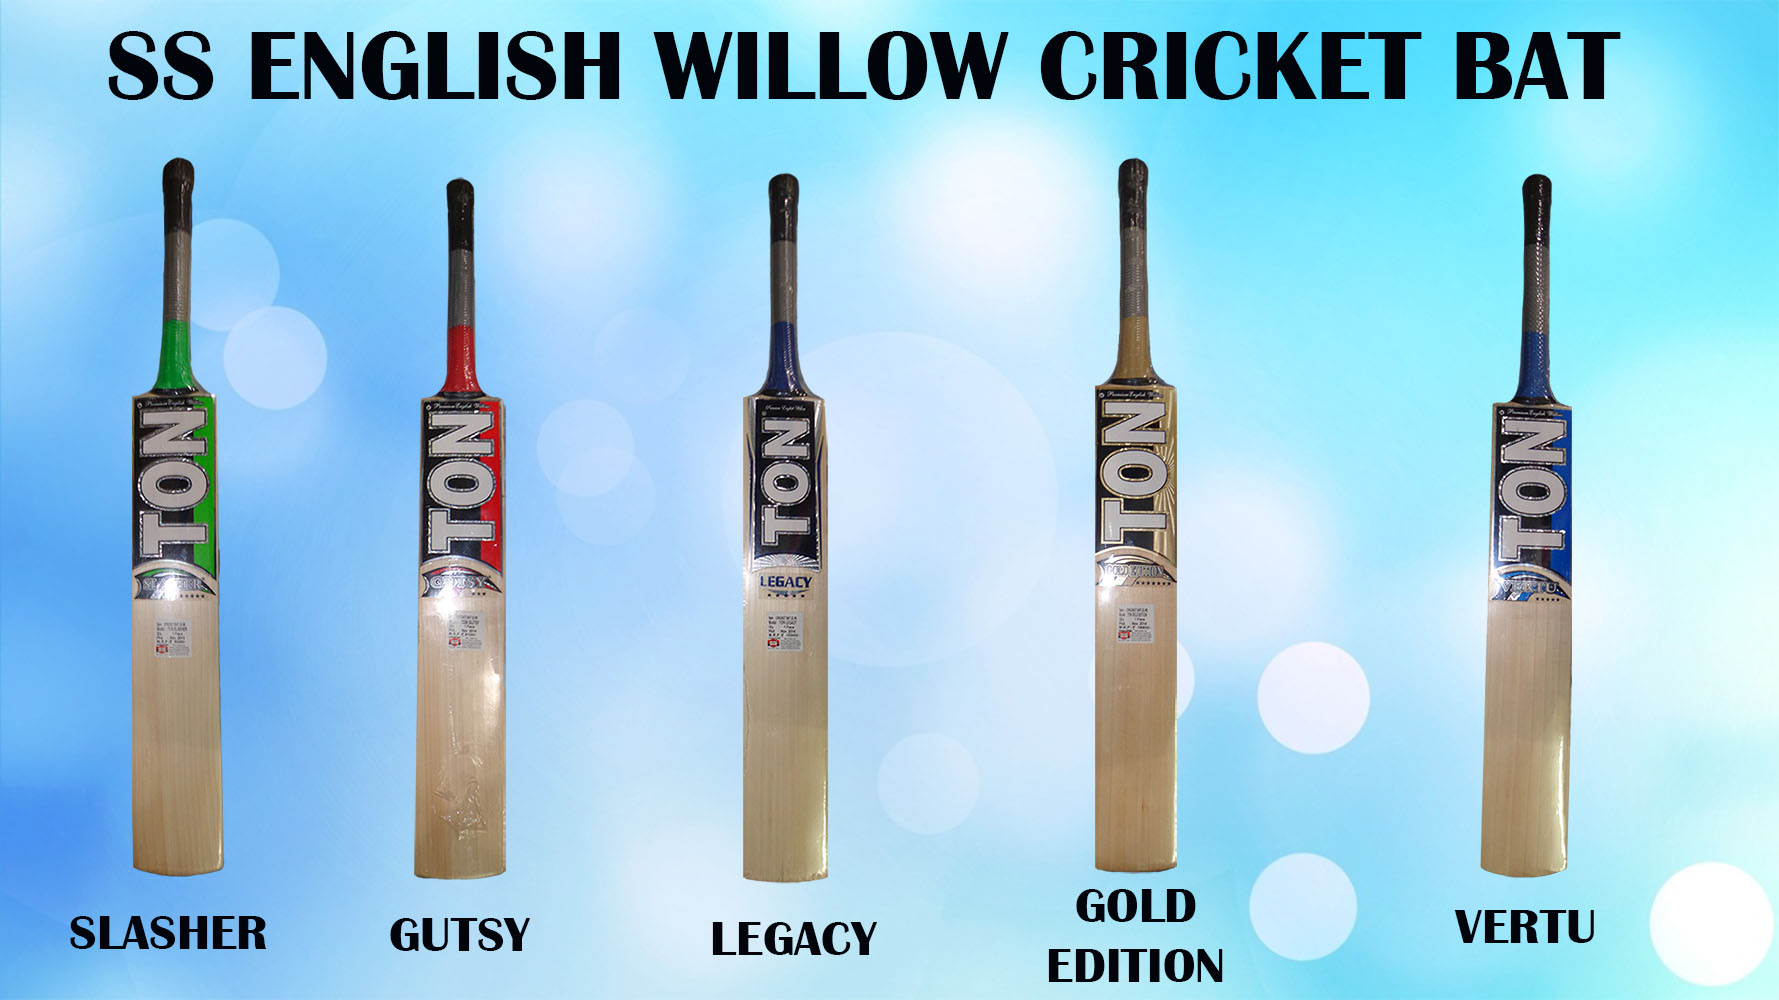 SS English willow cricket bat in Year 2015